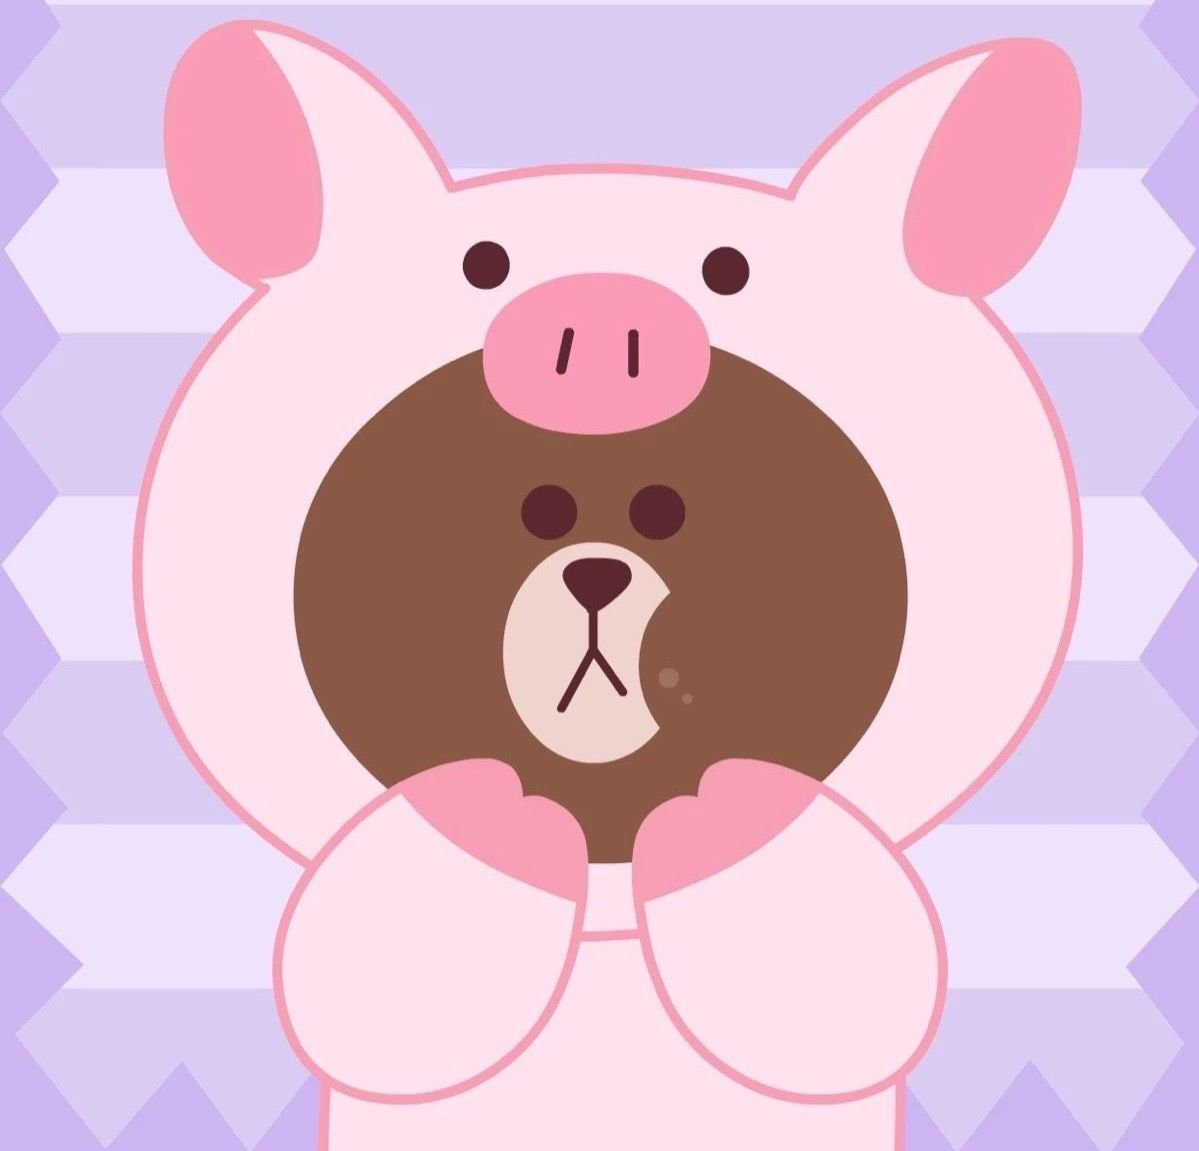 Iphone Backgrounds Wallpaper Wallpapers Line Friends Disney Characters Pigs Hello Kitty Brown Searching